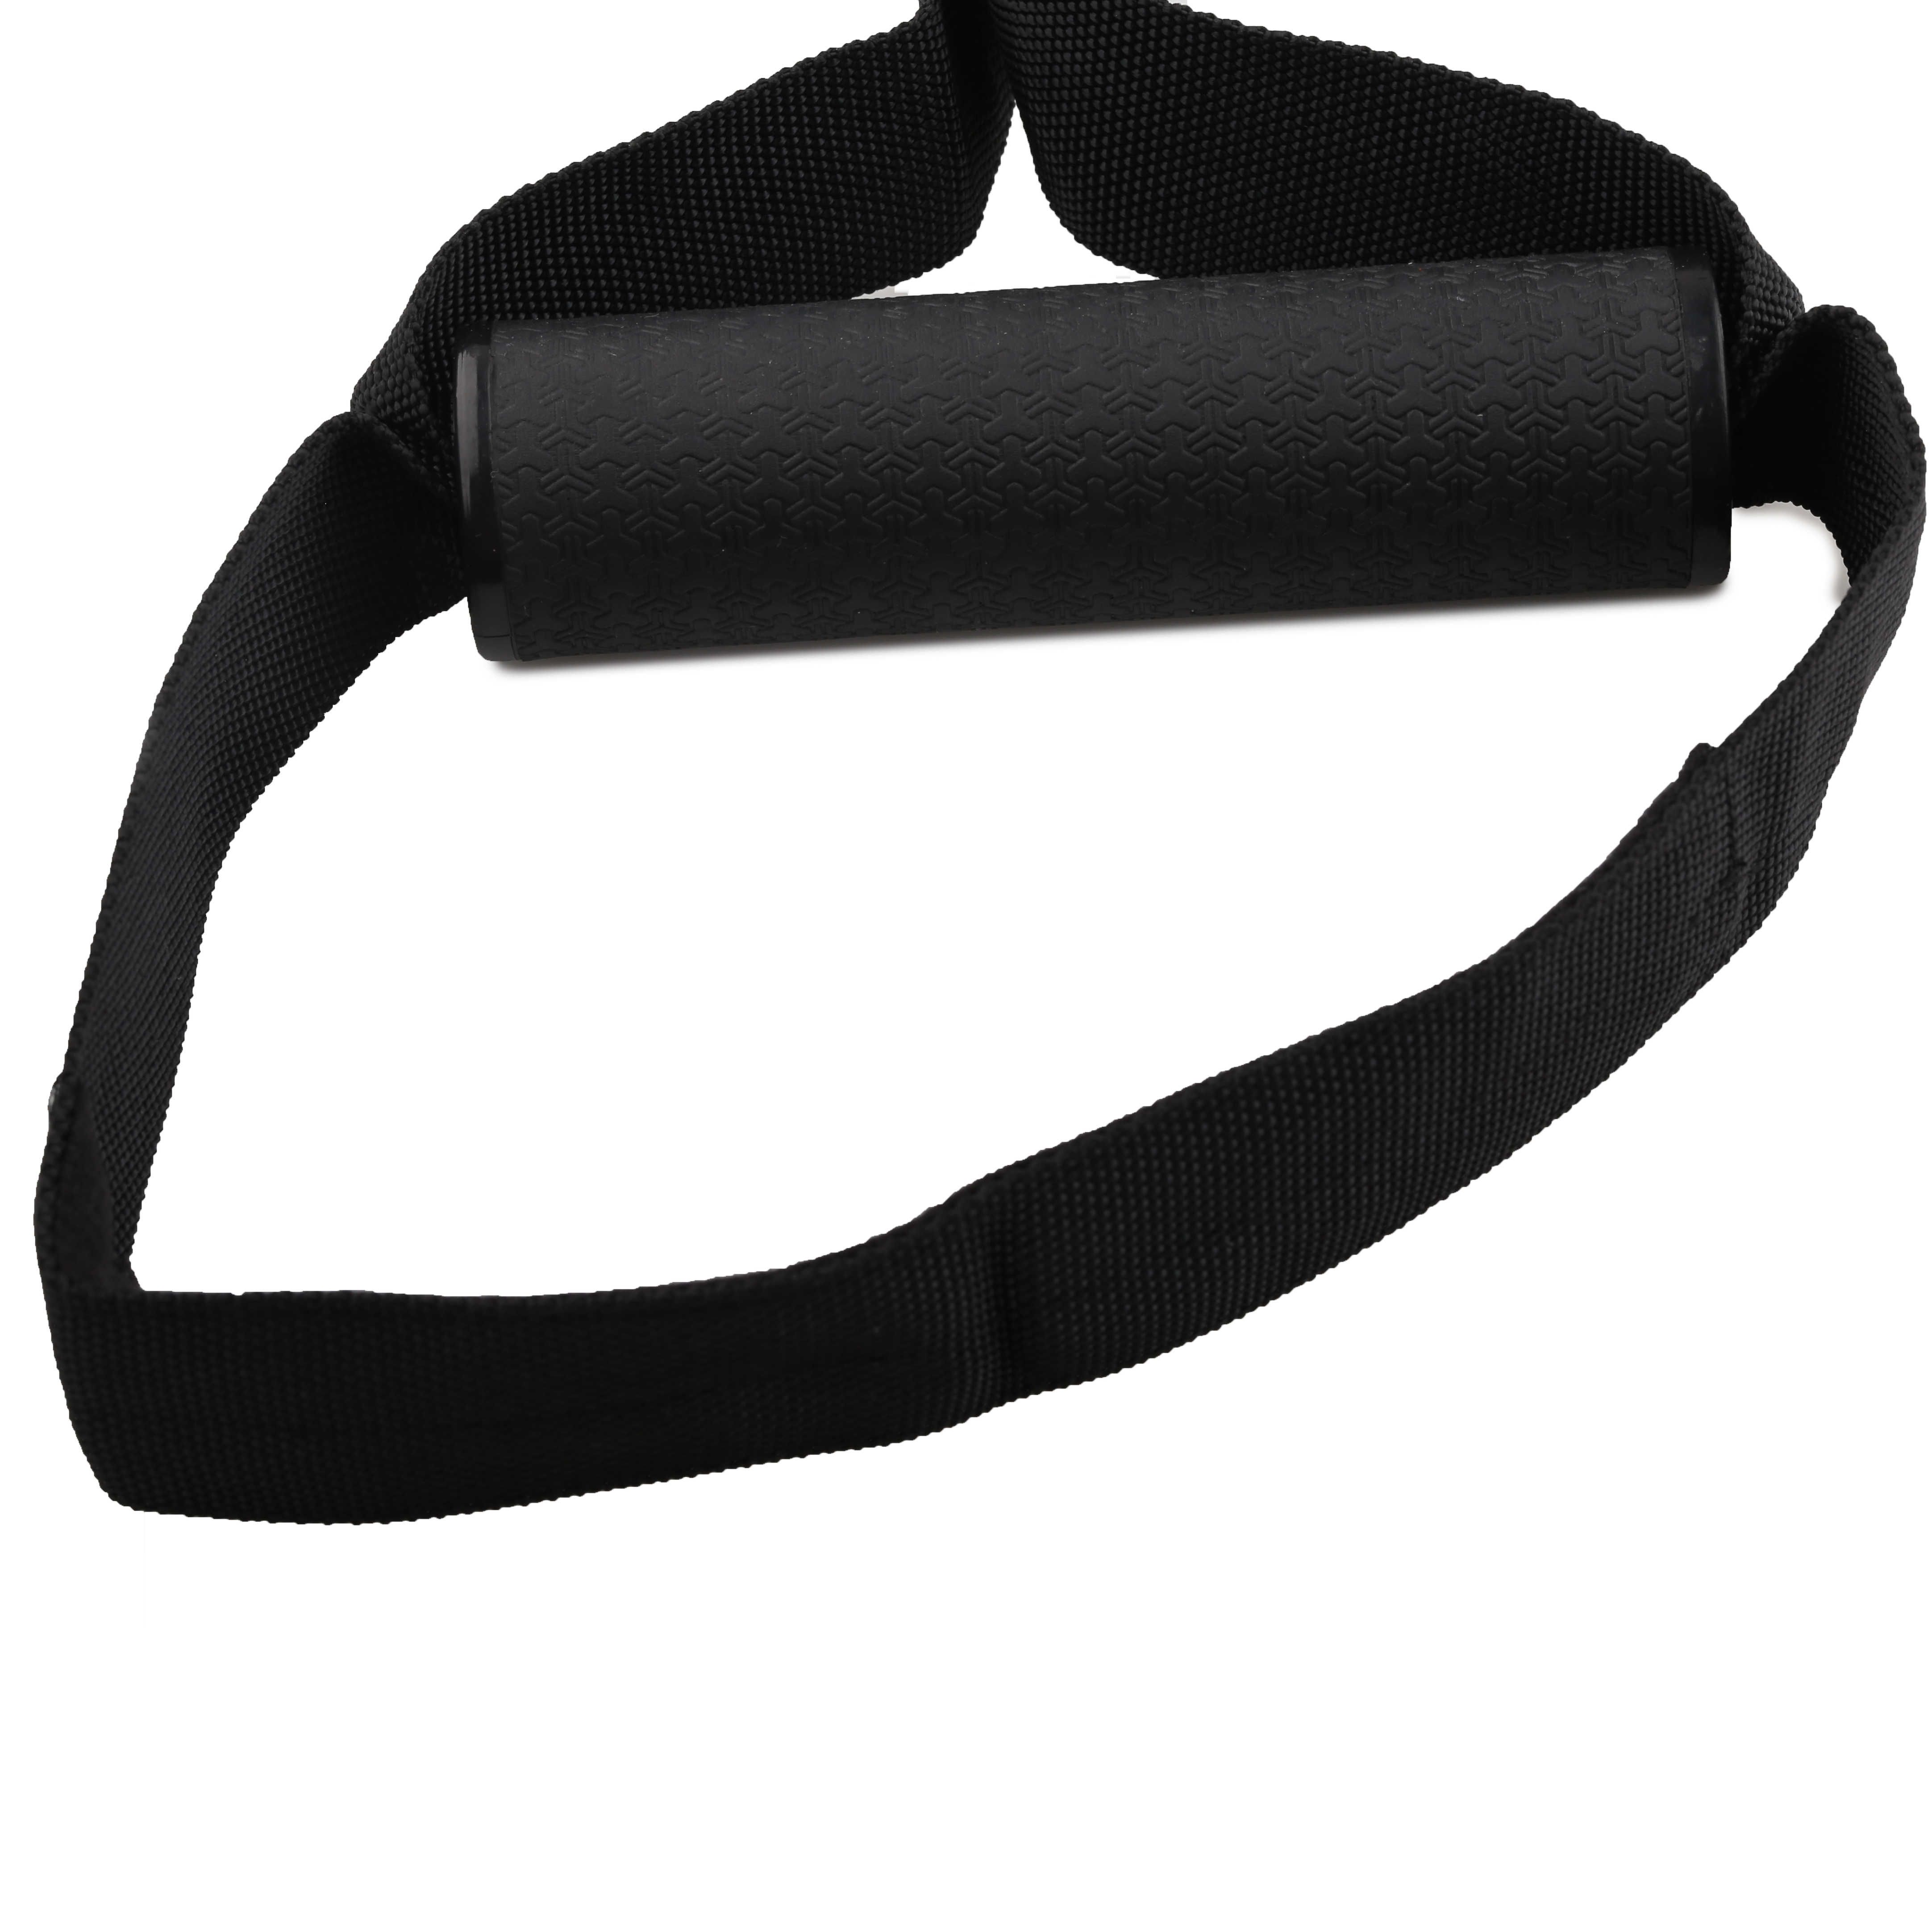 Stretchable Resistance Bands with Height Adjustable Elastic Straps and Handle for Workout and Exercise 5